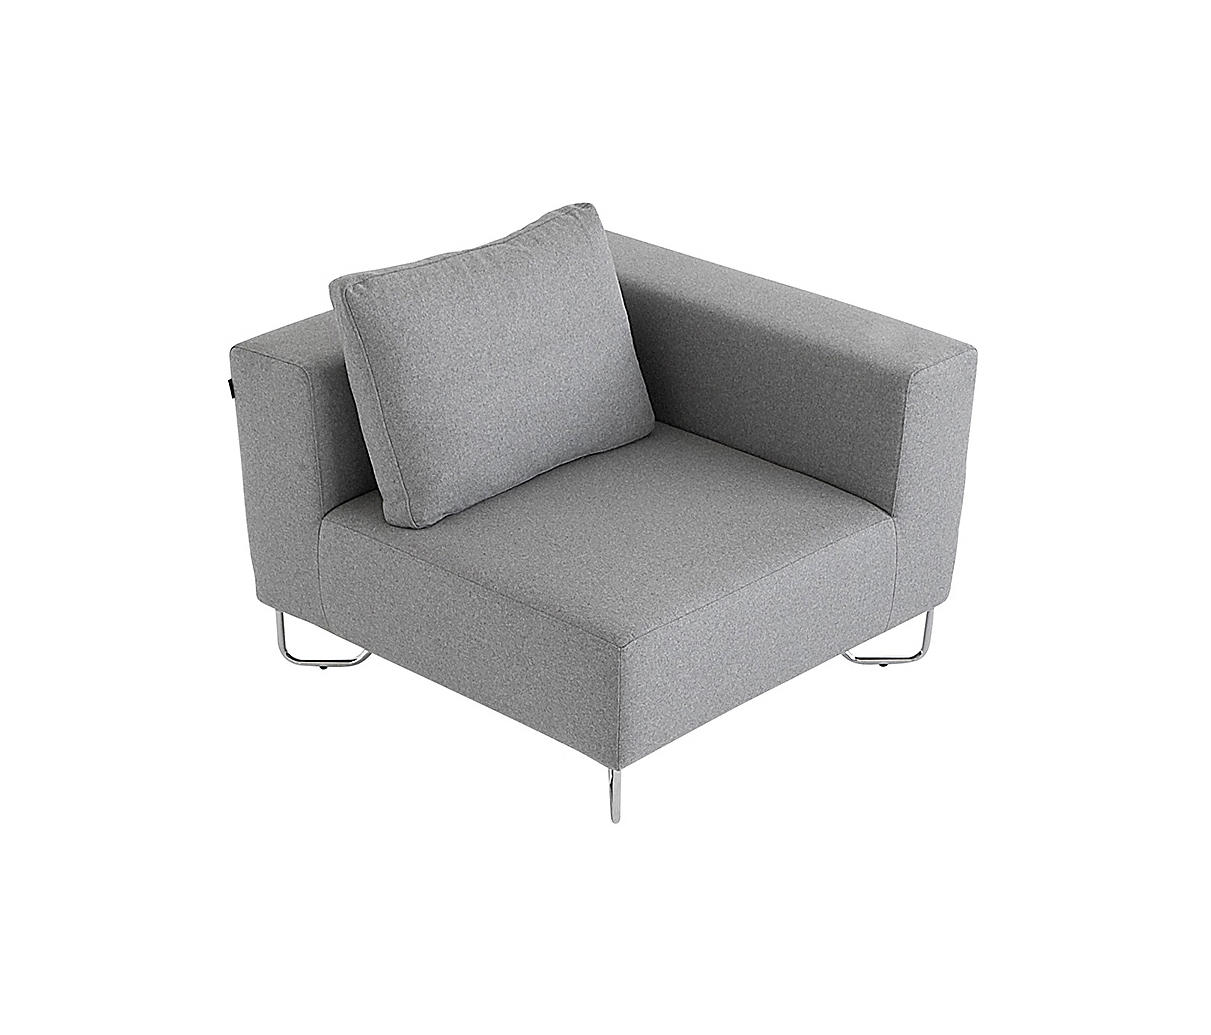 Outstanding Lotus Armchairs From Softline Architonic Andrewgaddart Wooden Chair Designs For Living Room Andrewgaddartcom